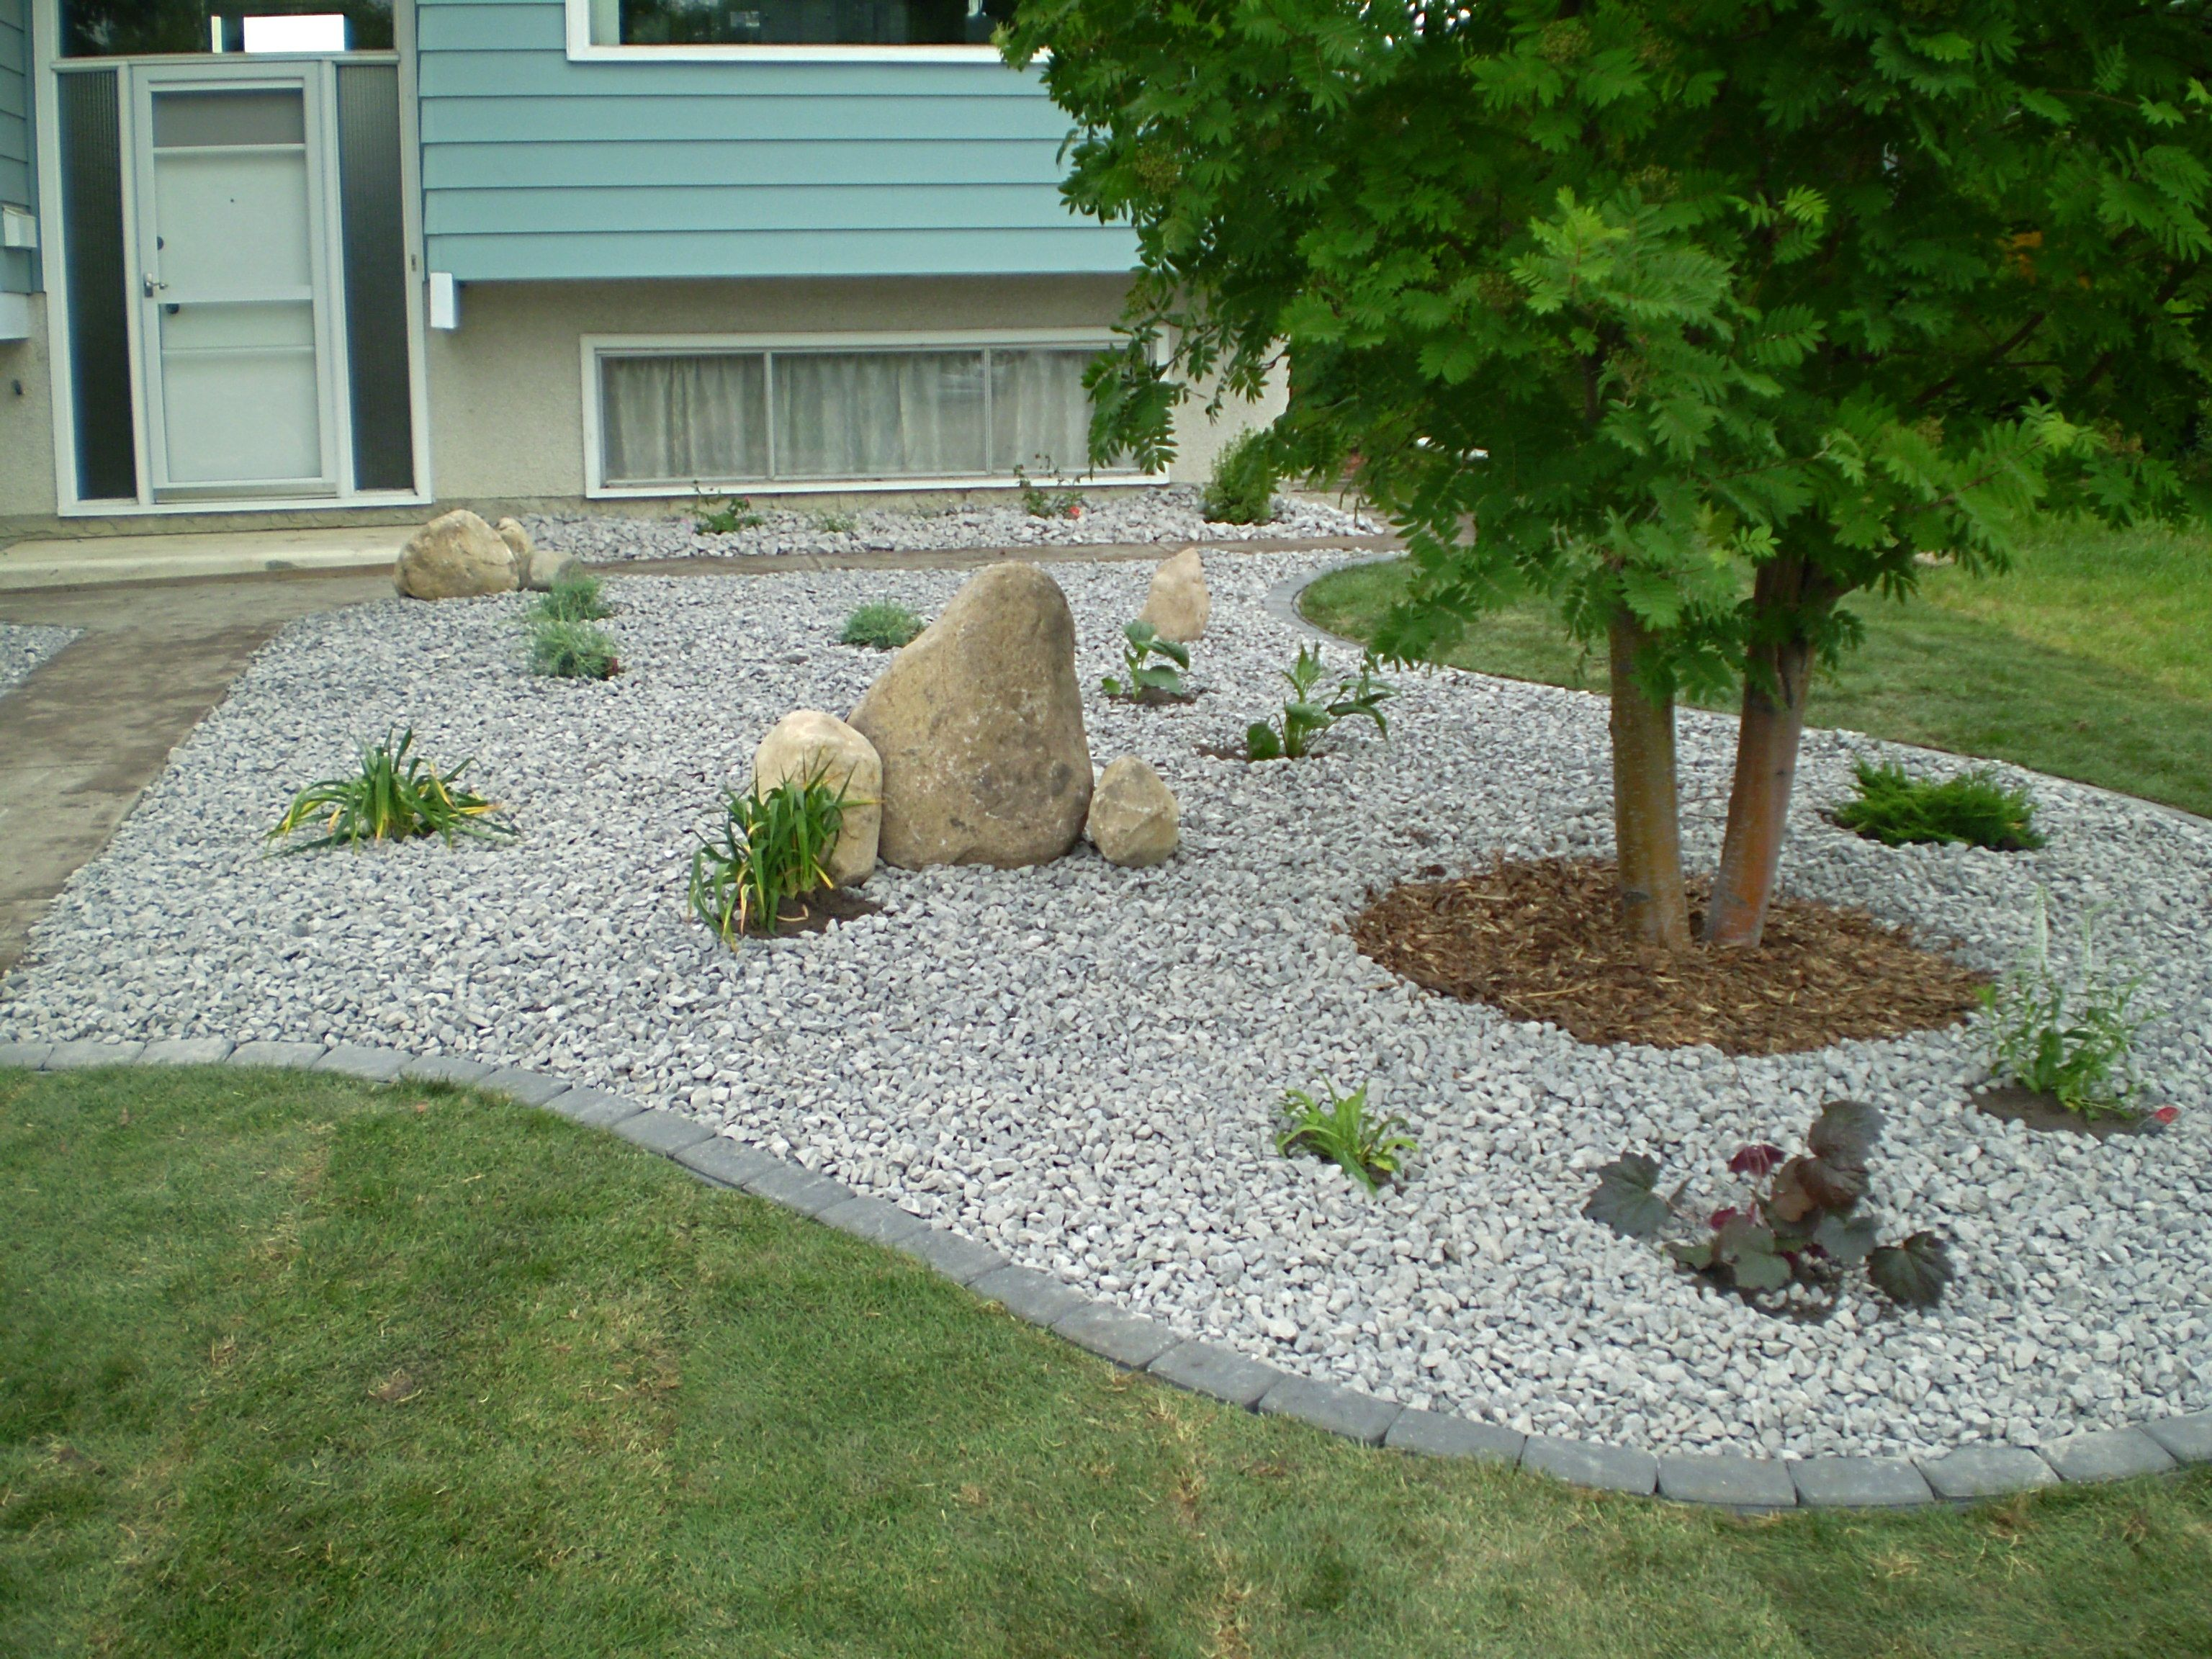 Landscaping with rocks and stones whitemud garden centre for Rock landscaping ideas